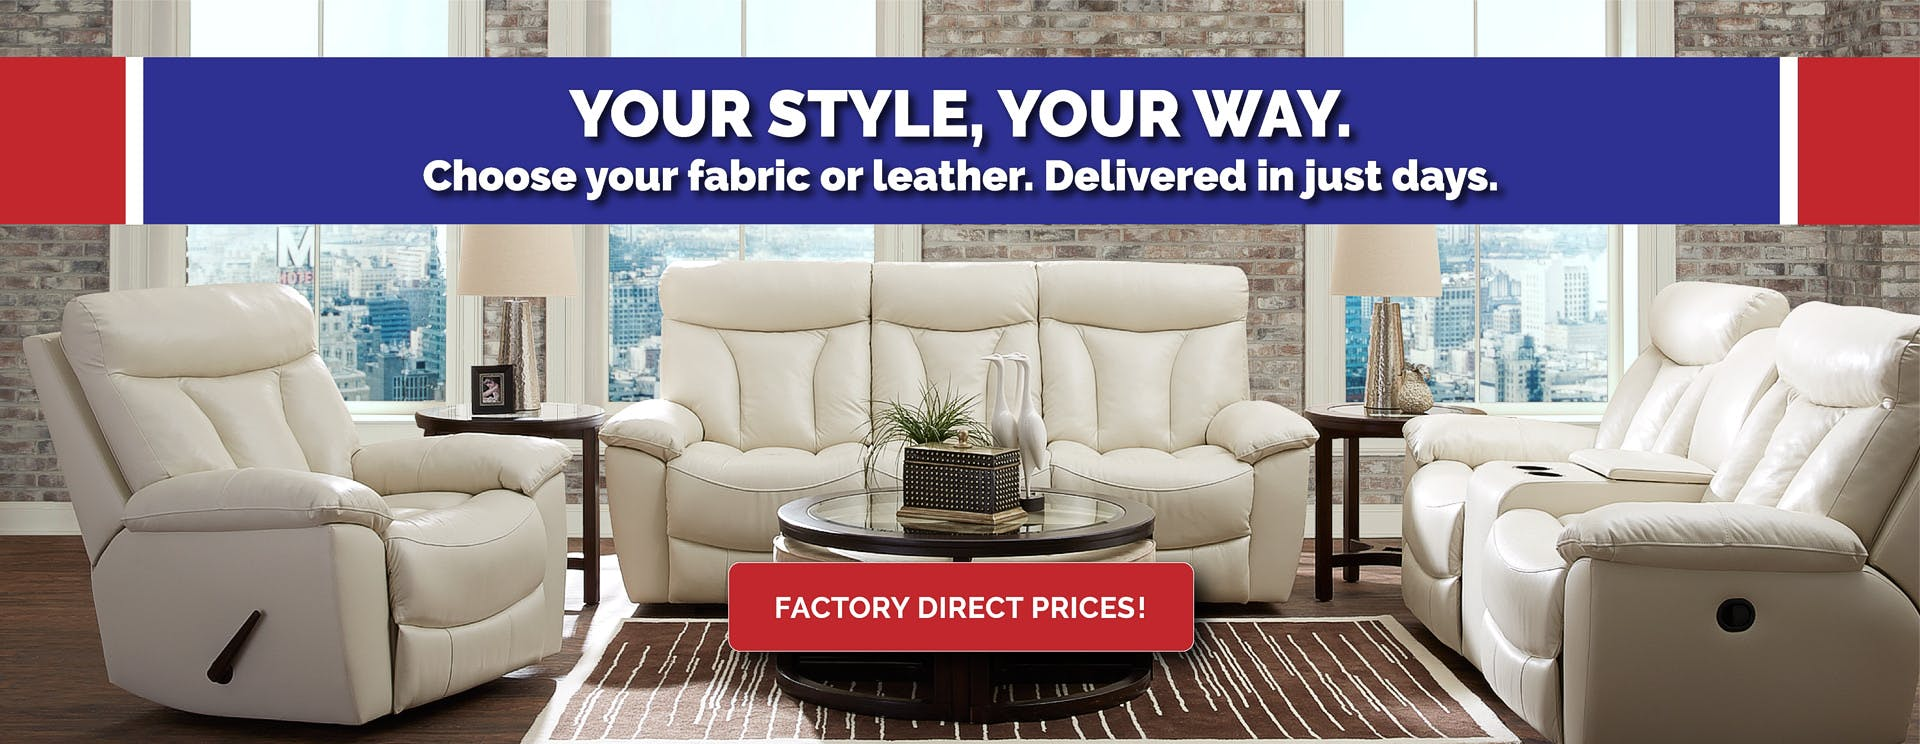 Astounding Klaussner Home Furnishings Raleigh Nc Sofas Sectionals Machost Co Dining Chair Design Ideas Machostcouk